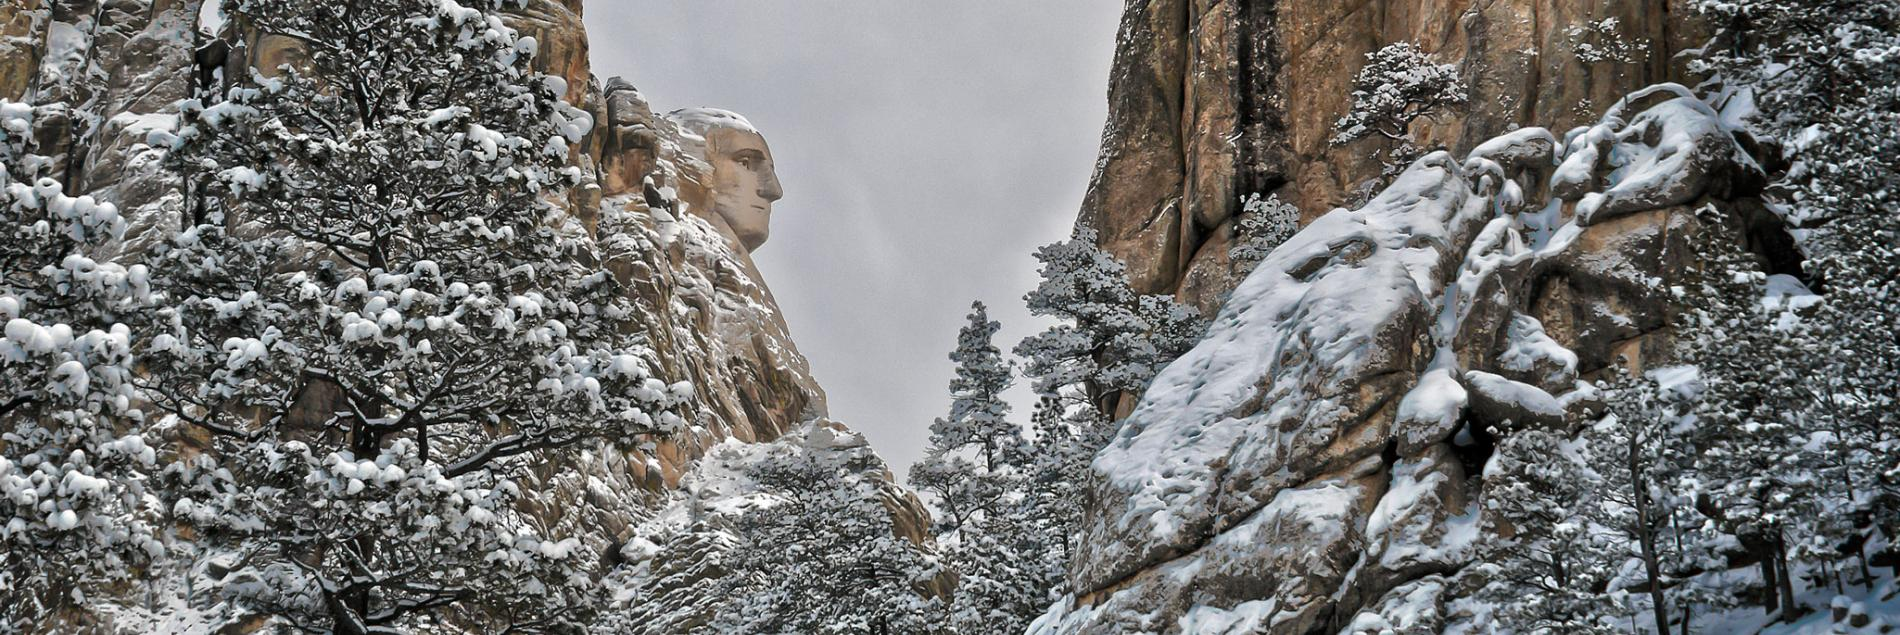 Winter at Mount Rushmore